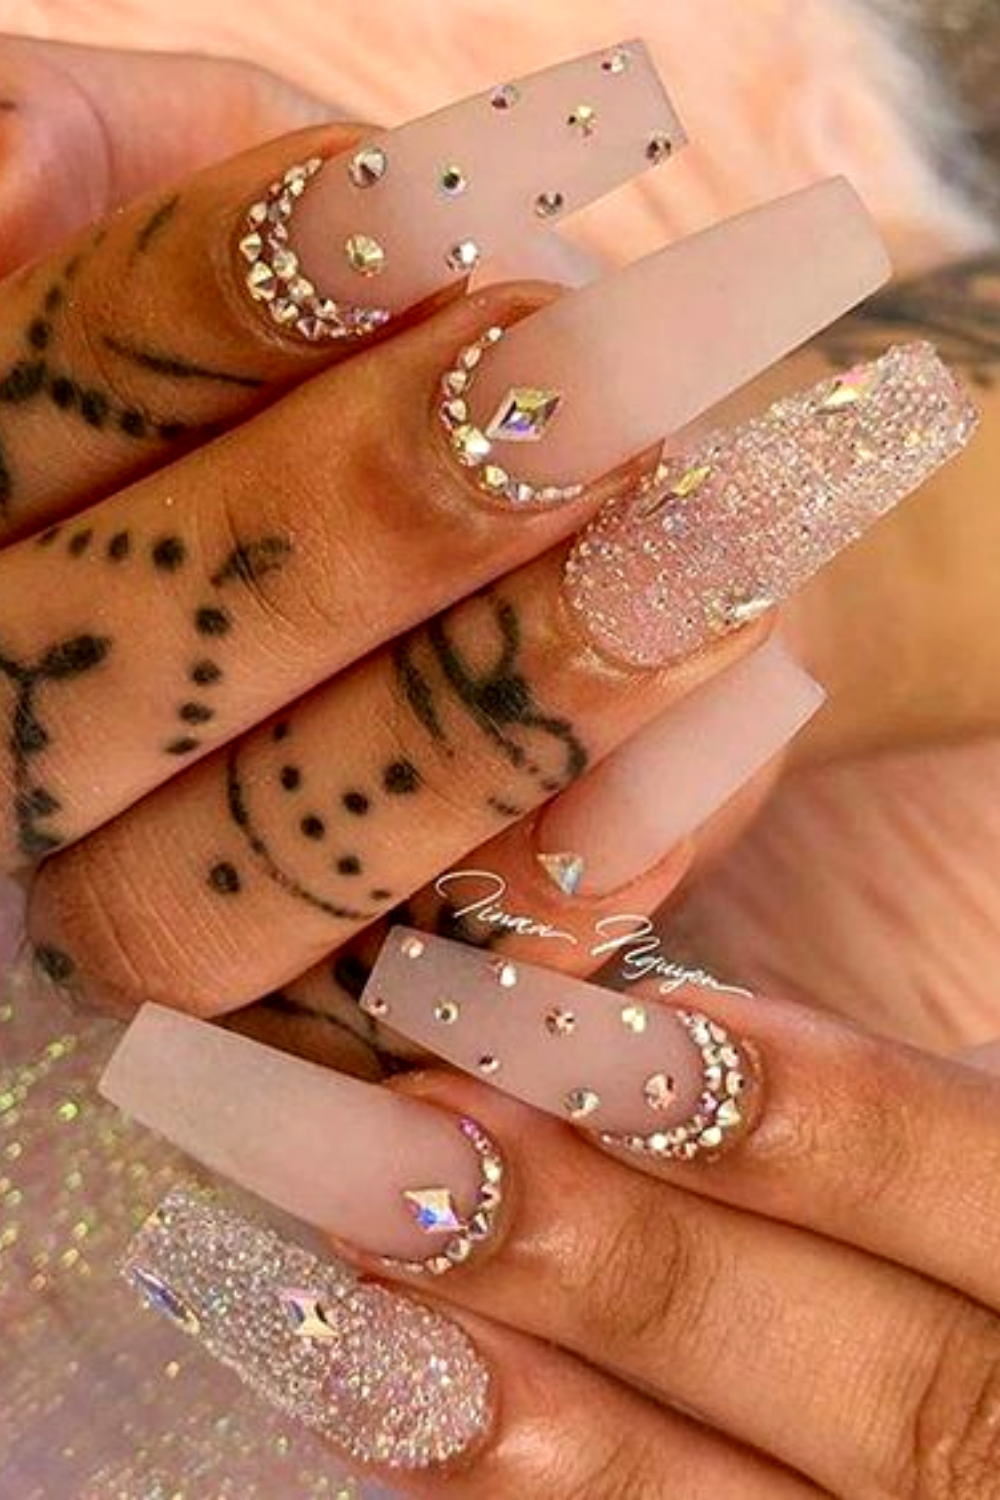 10 Astonishing Acrylic Coffin Nail Designs That You Should Try In 2020 Coffin Nails Designs Rhinestone Nails Cute Acrylic Nails